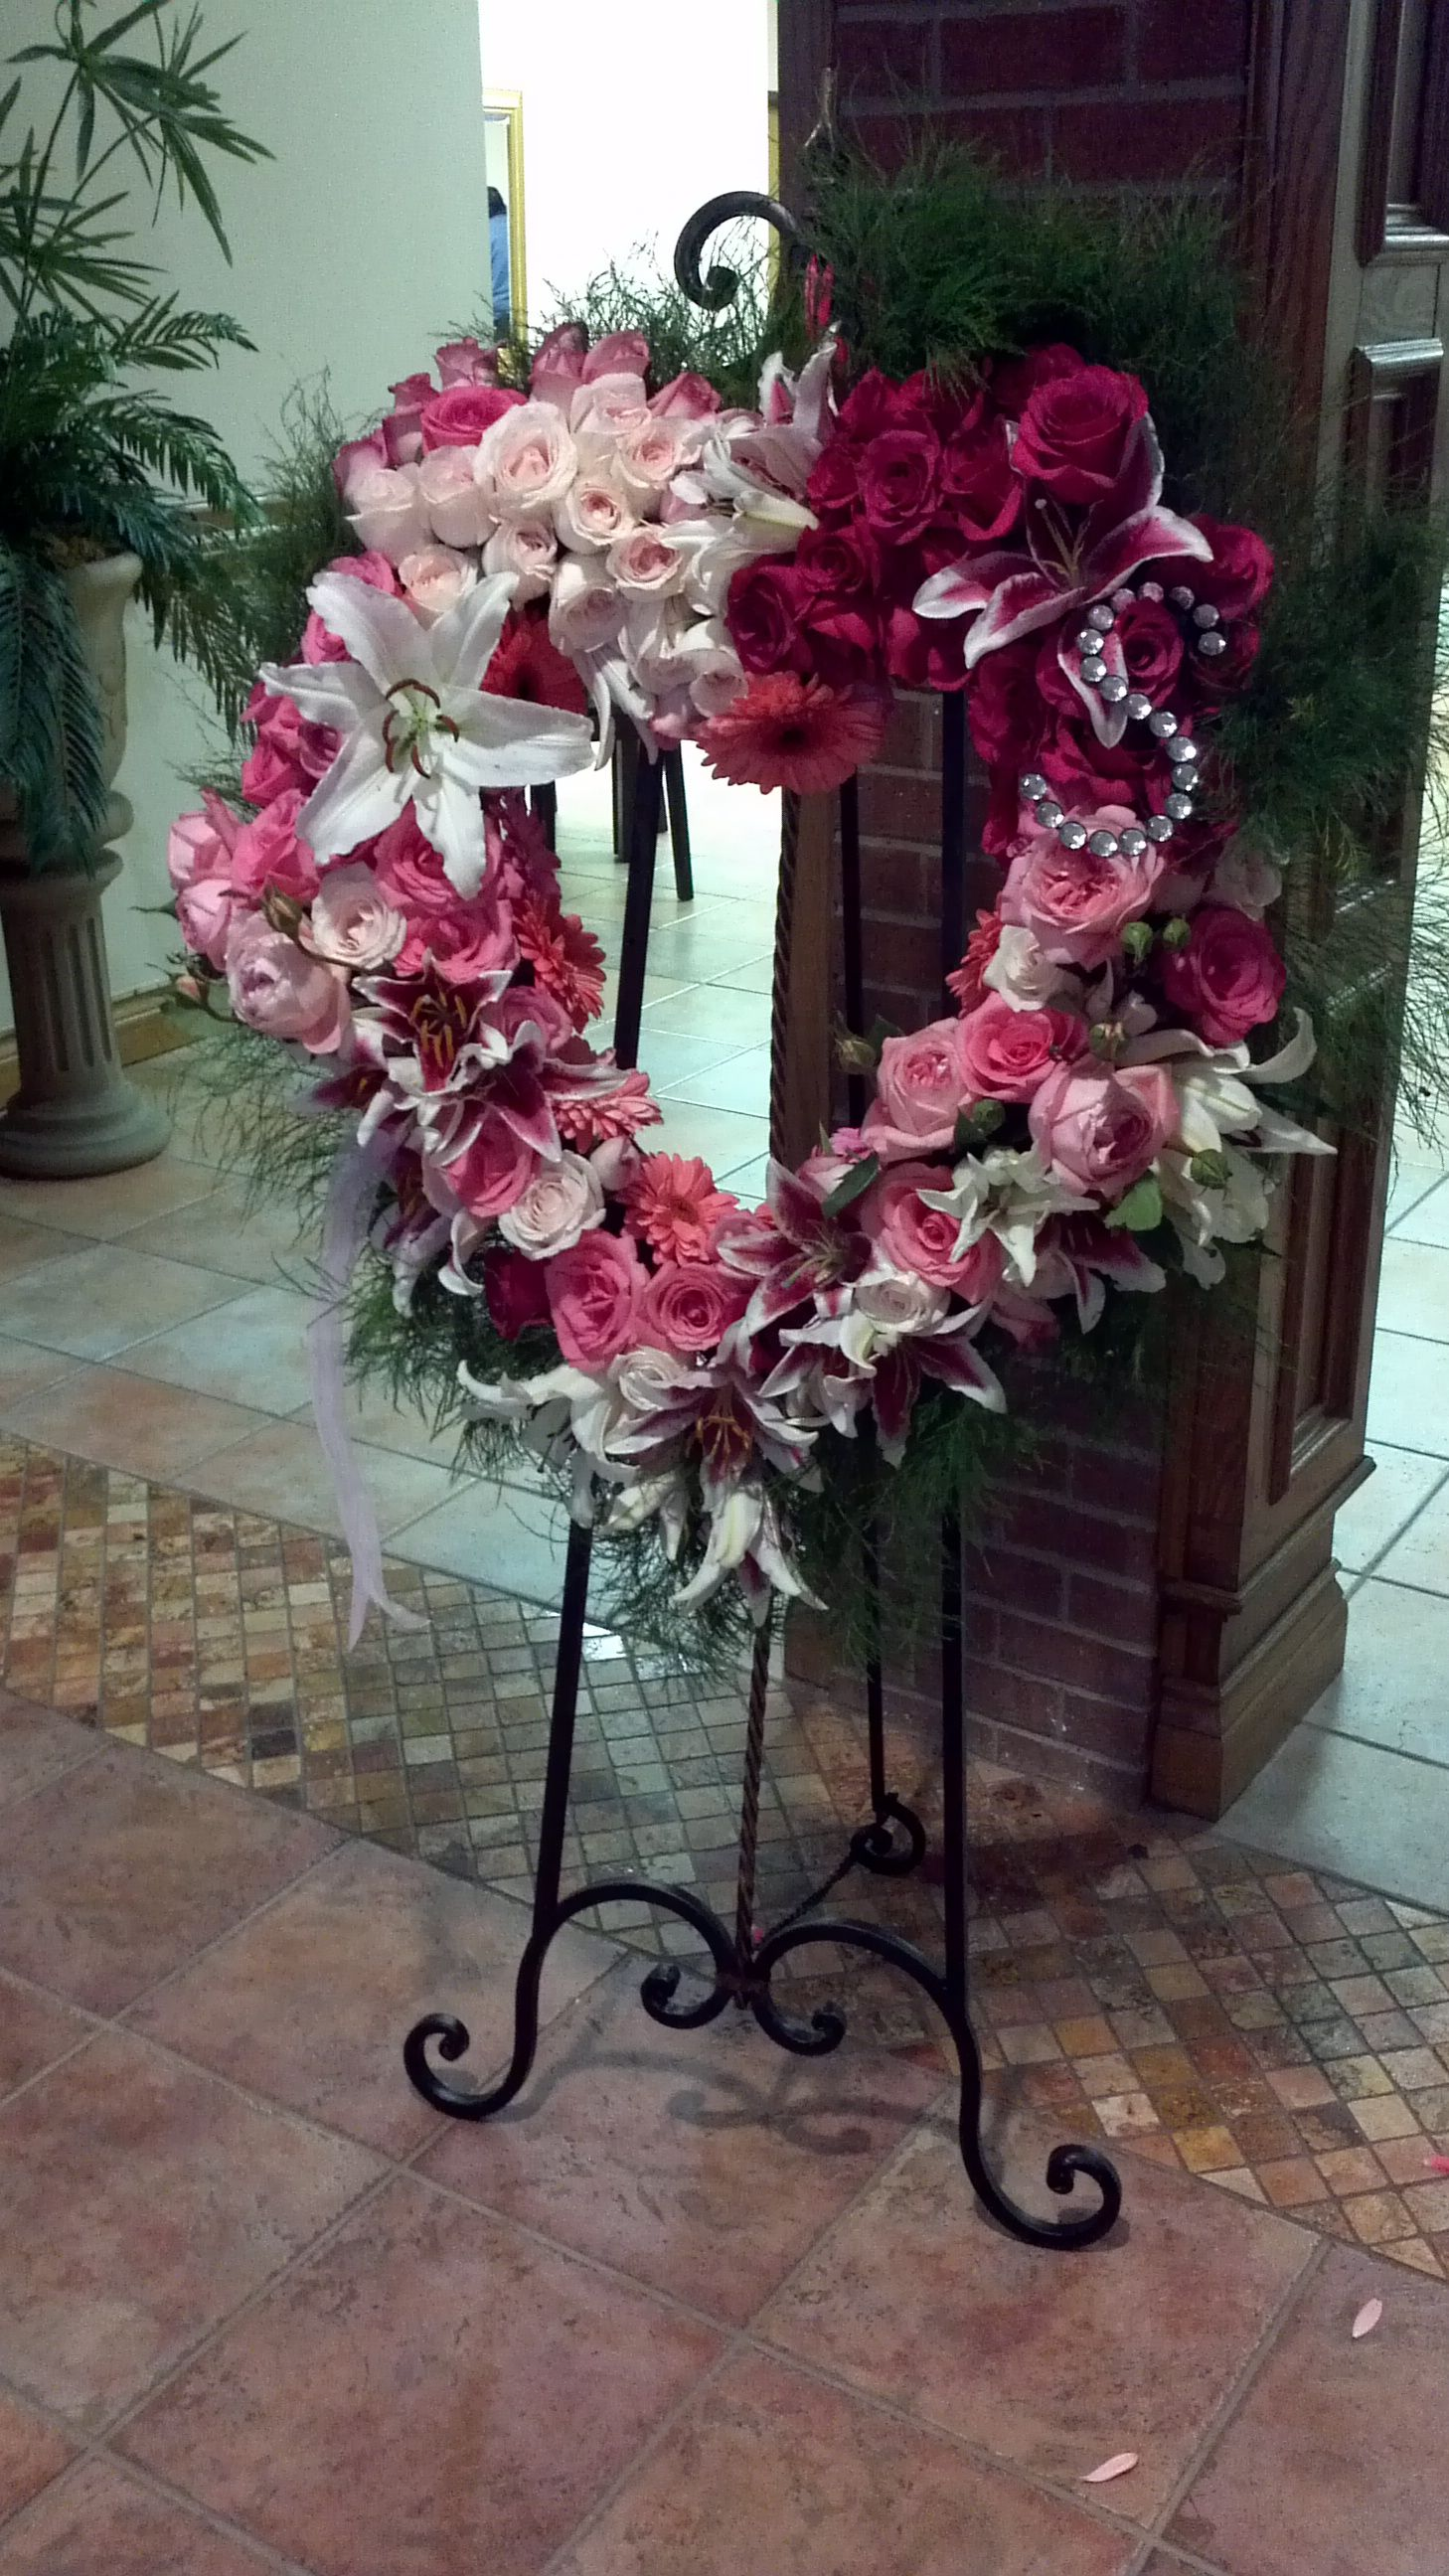 Funeral Flowers For An Angel Floral Arrangements Pinterest